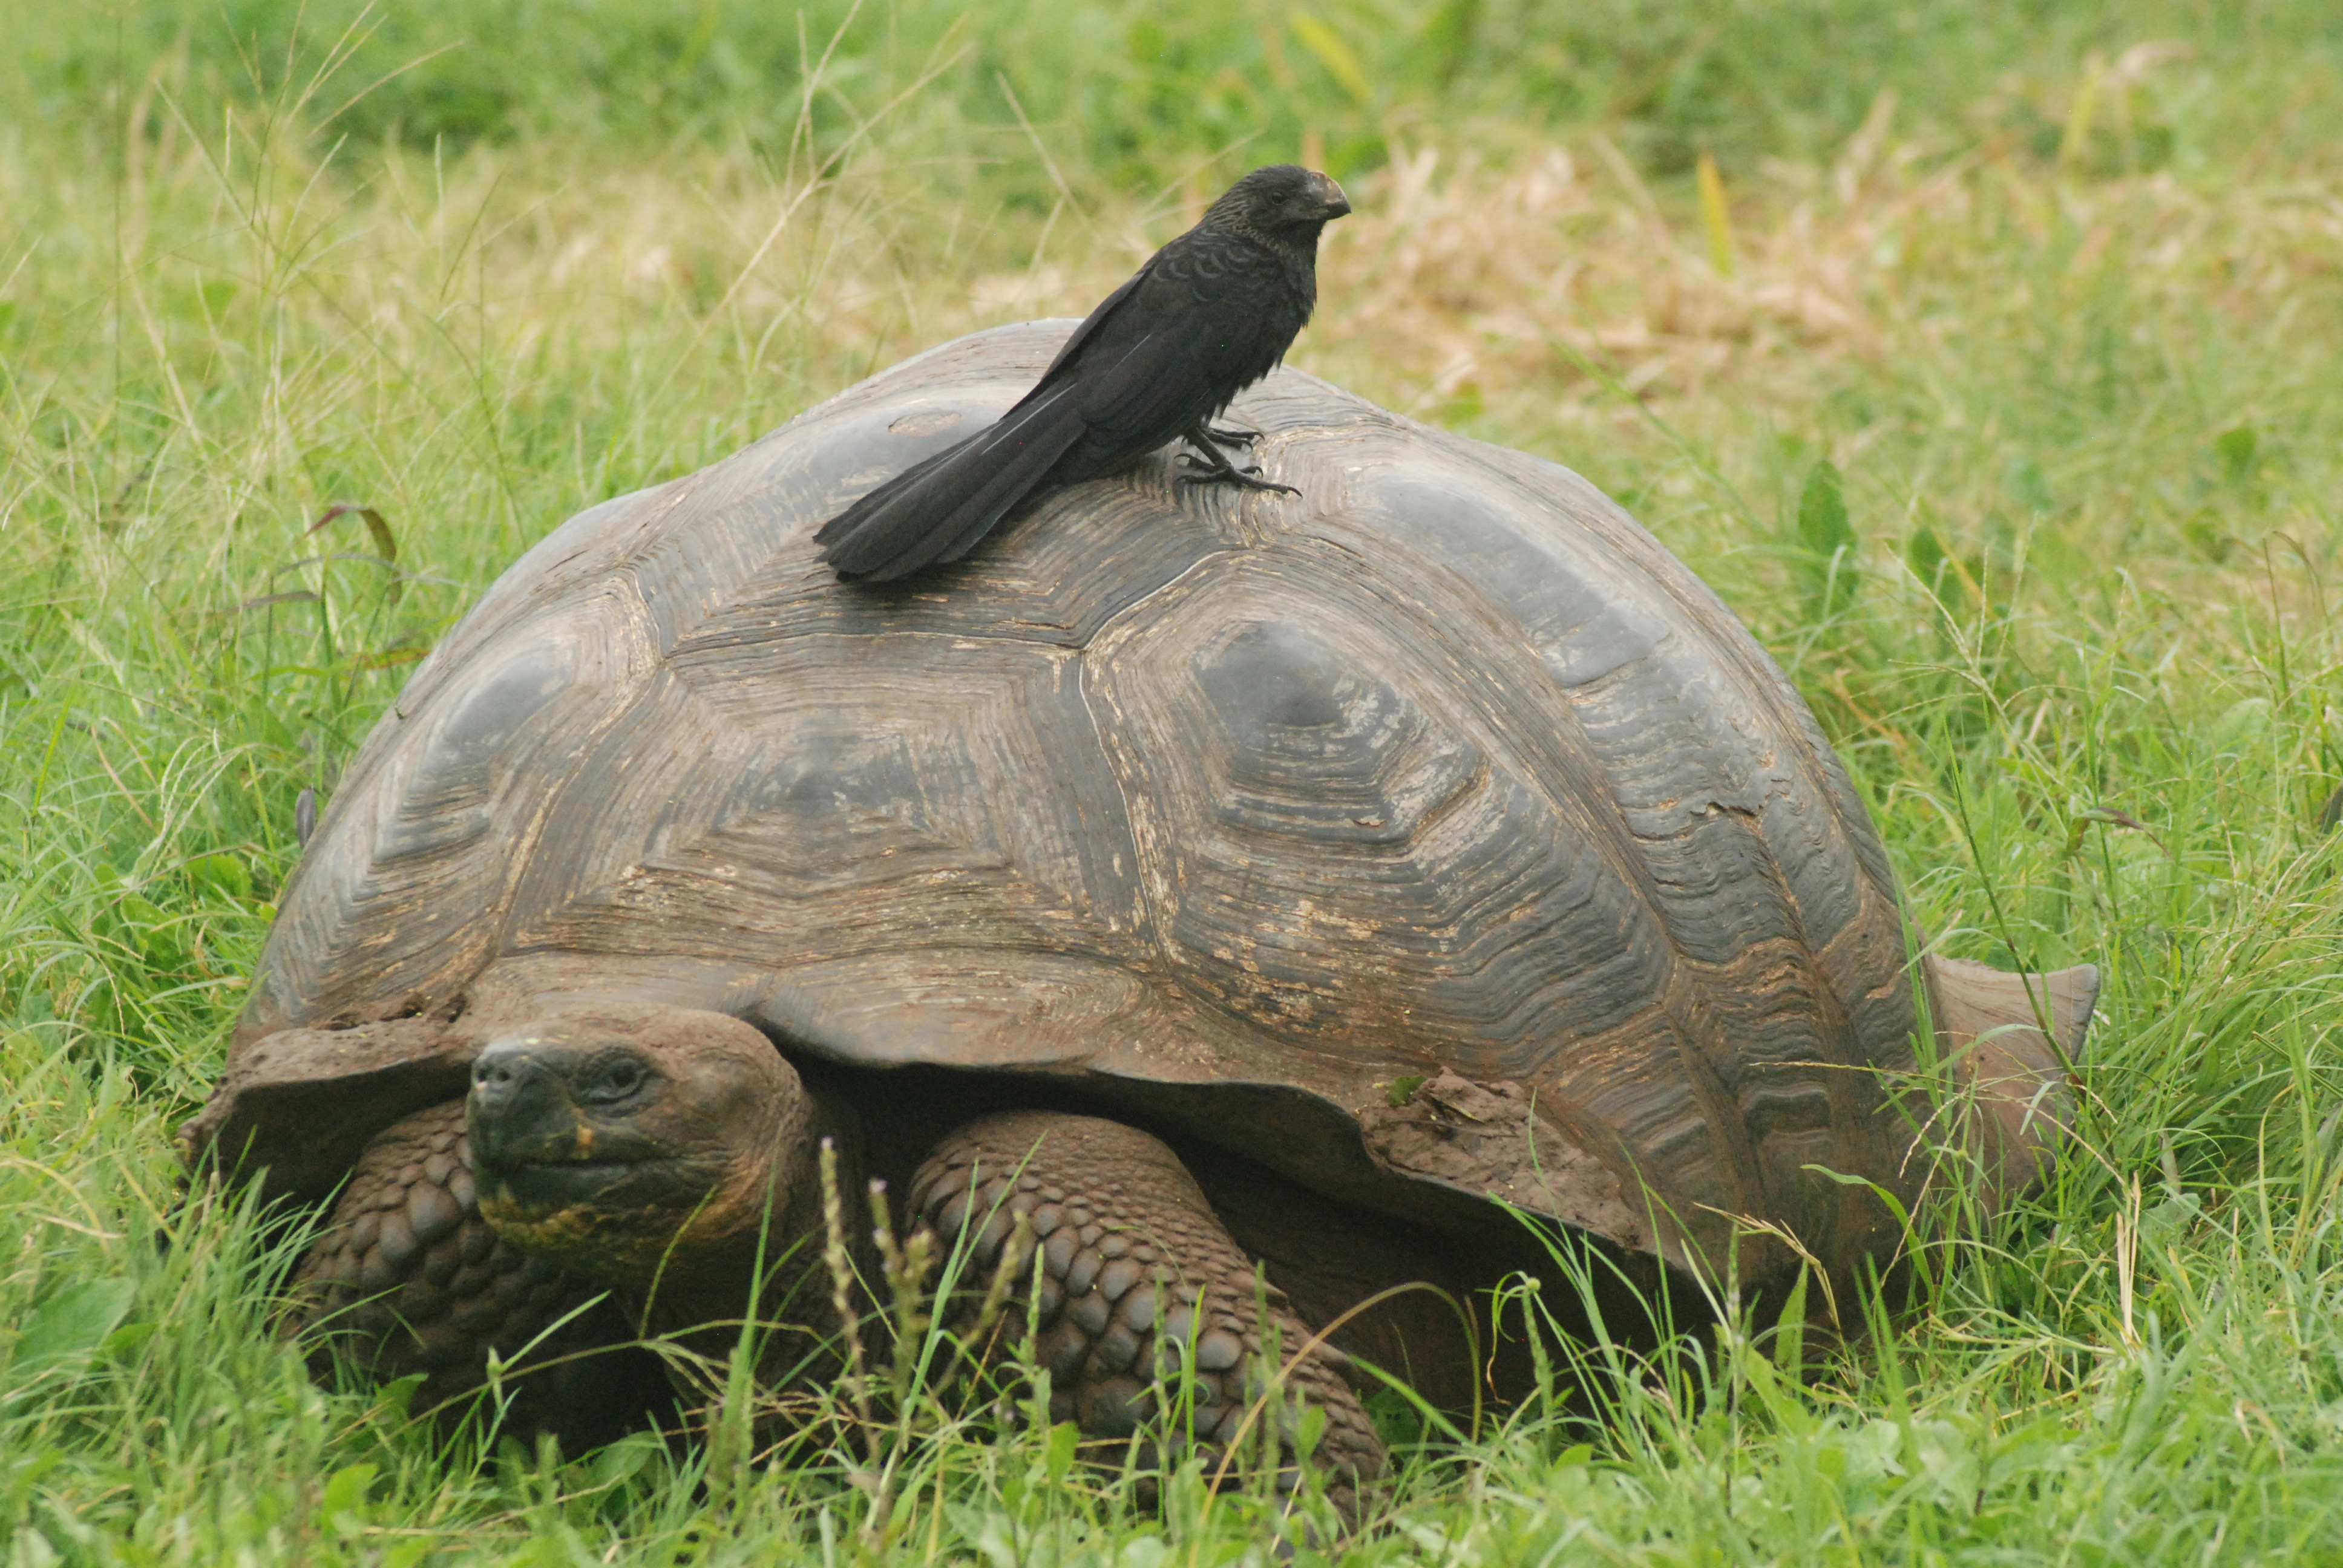 Smooth-billed Ani and Tortoise